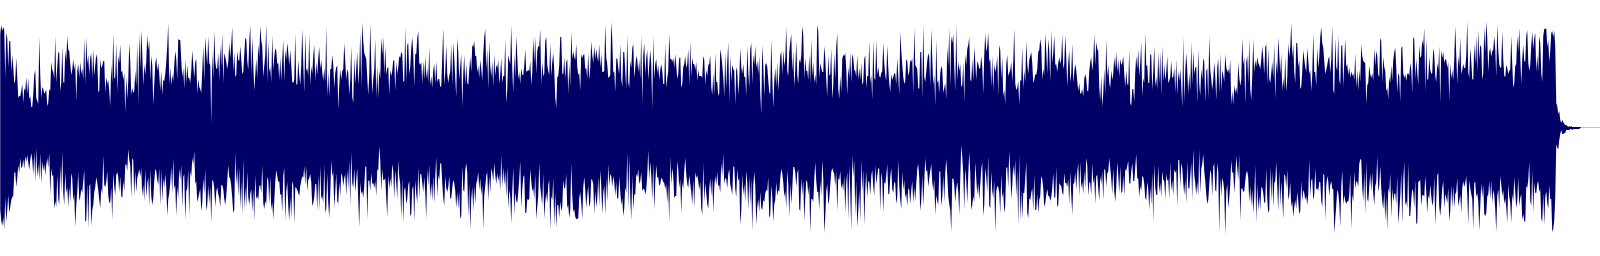 waveform of track #129775